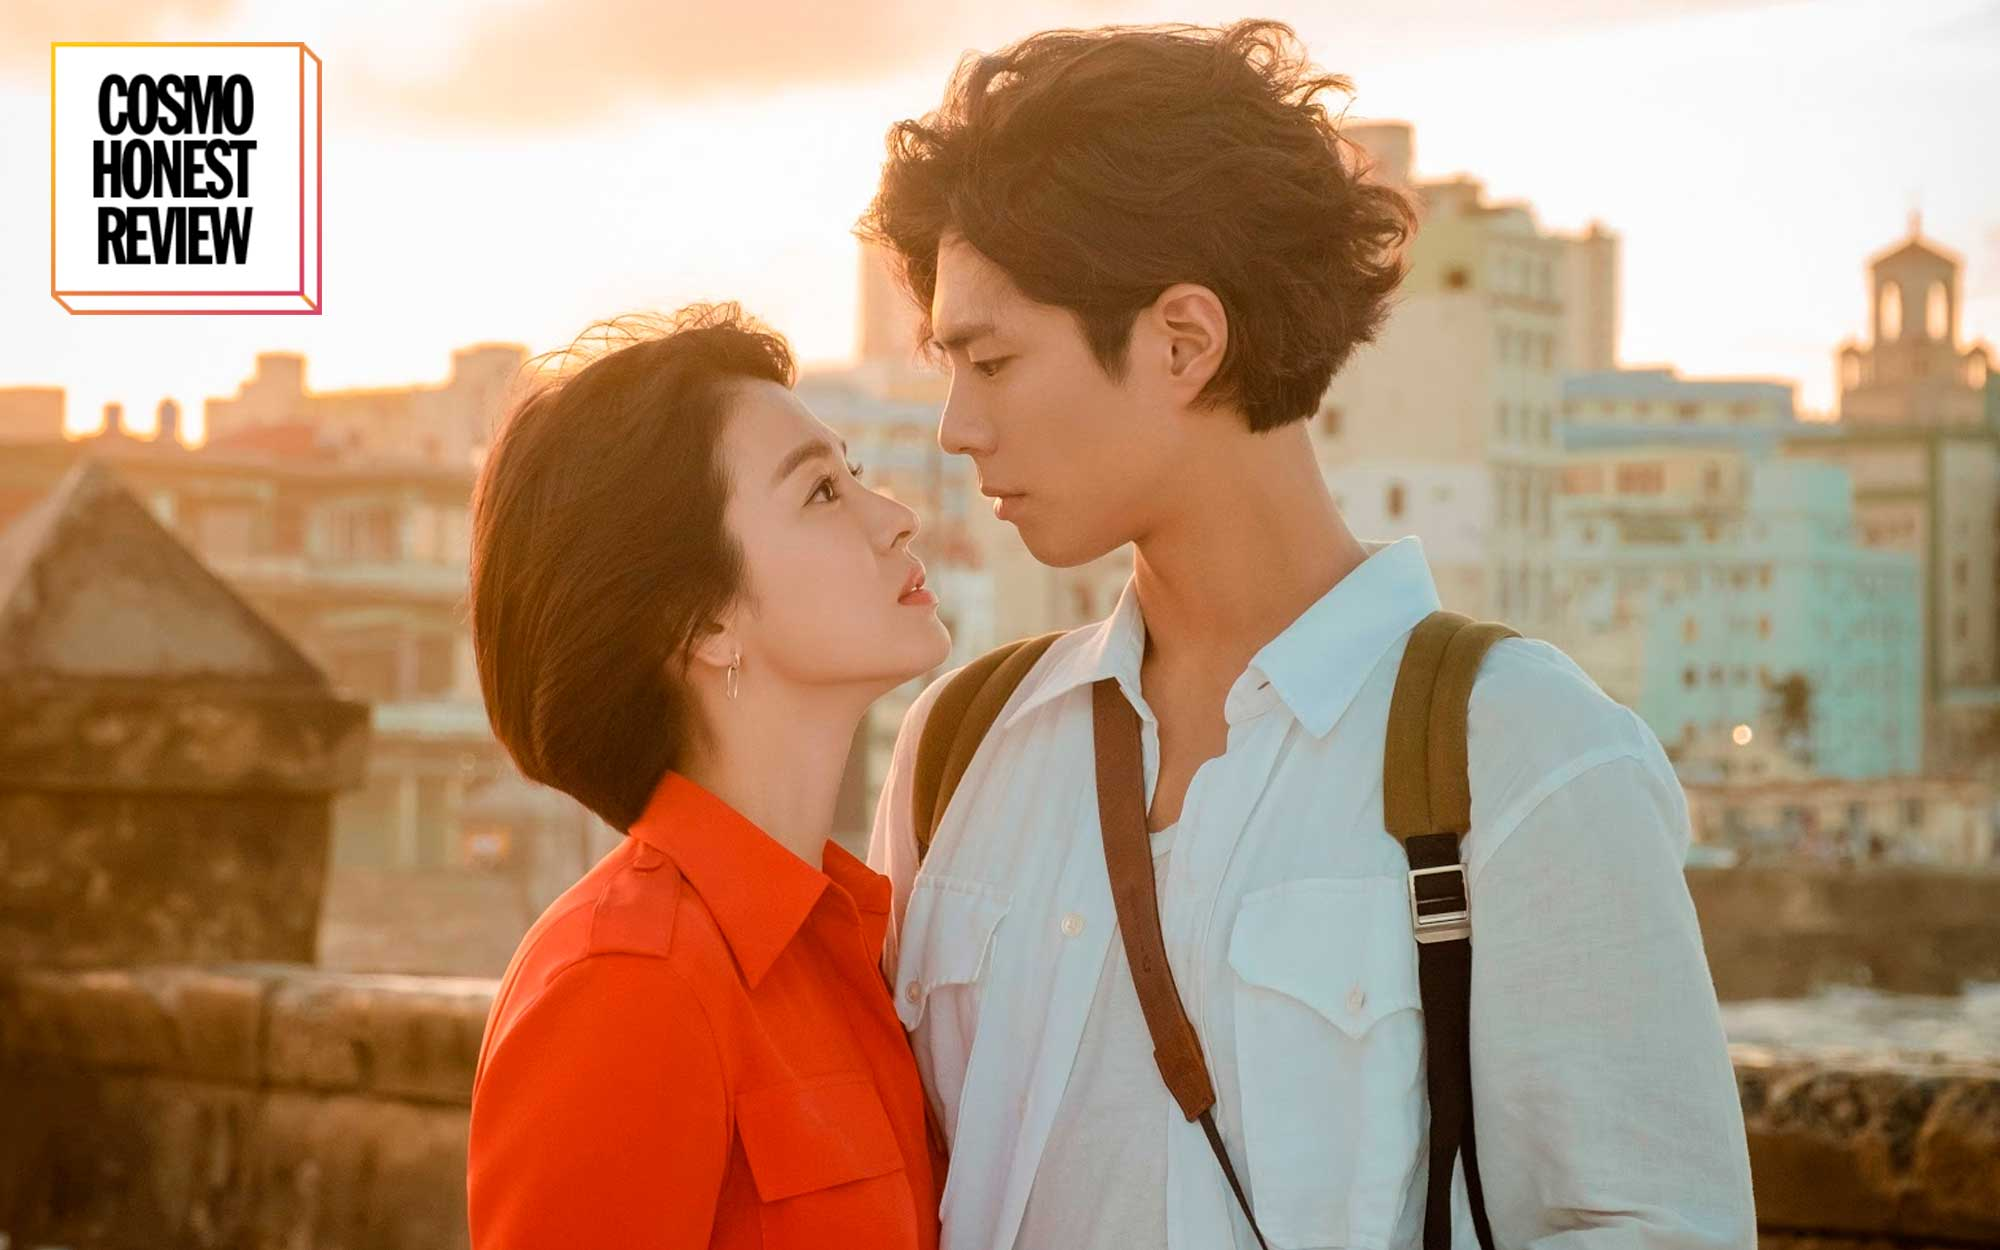 K-Drama Review Of 'Encounter'